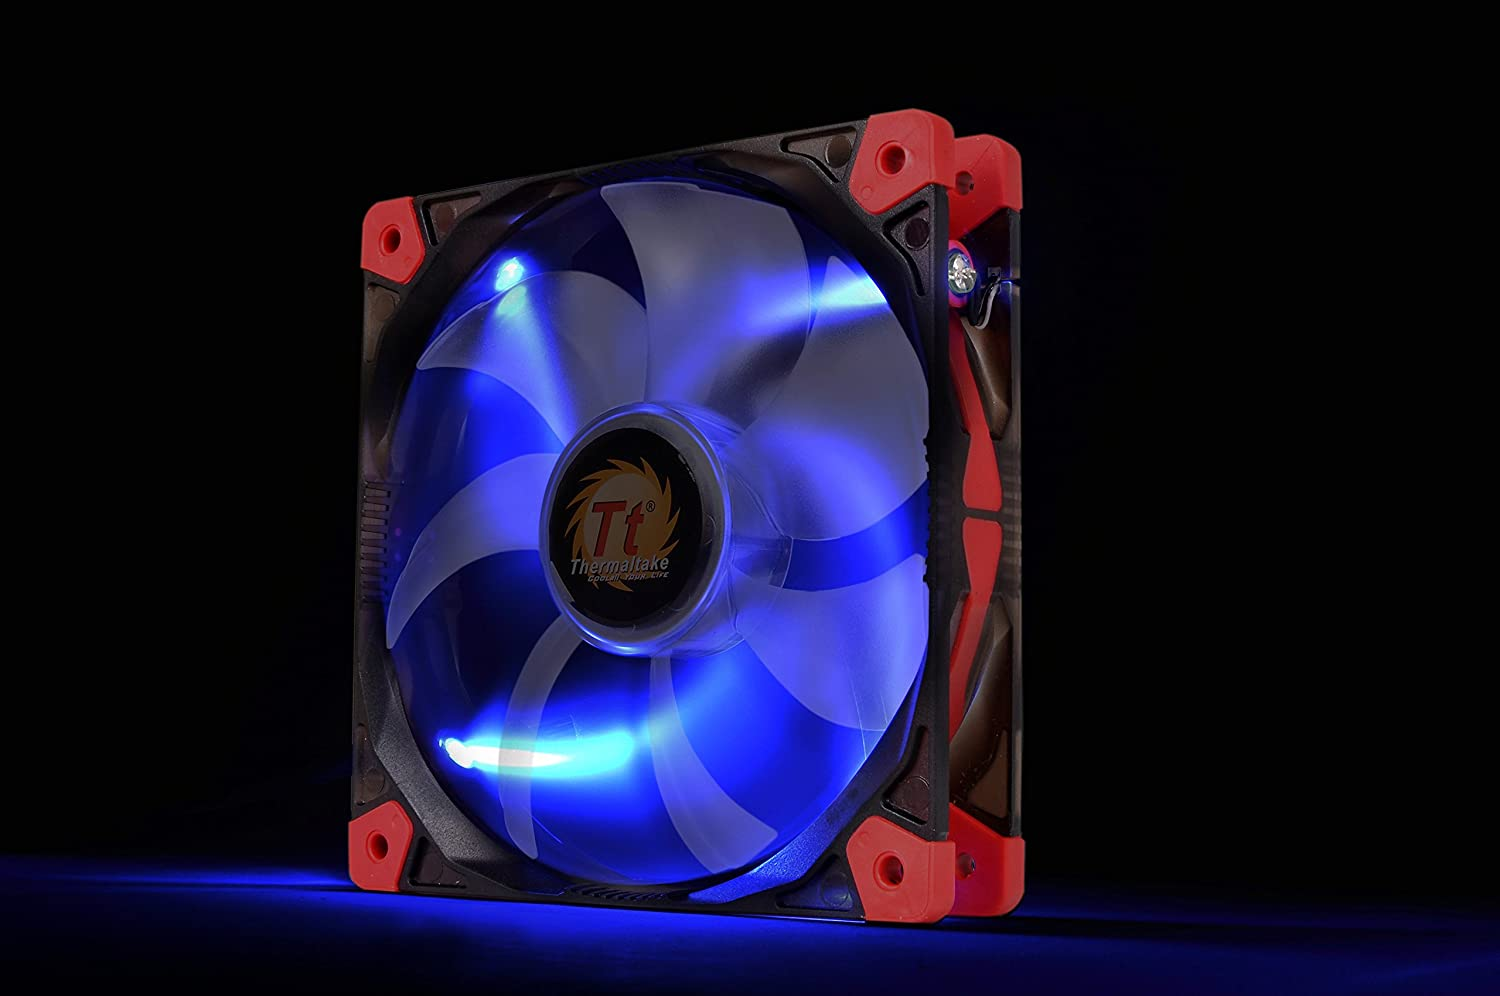 Thermaltake Luna Series LED Fans Cooling